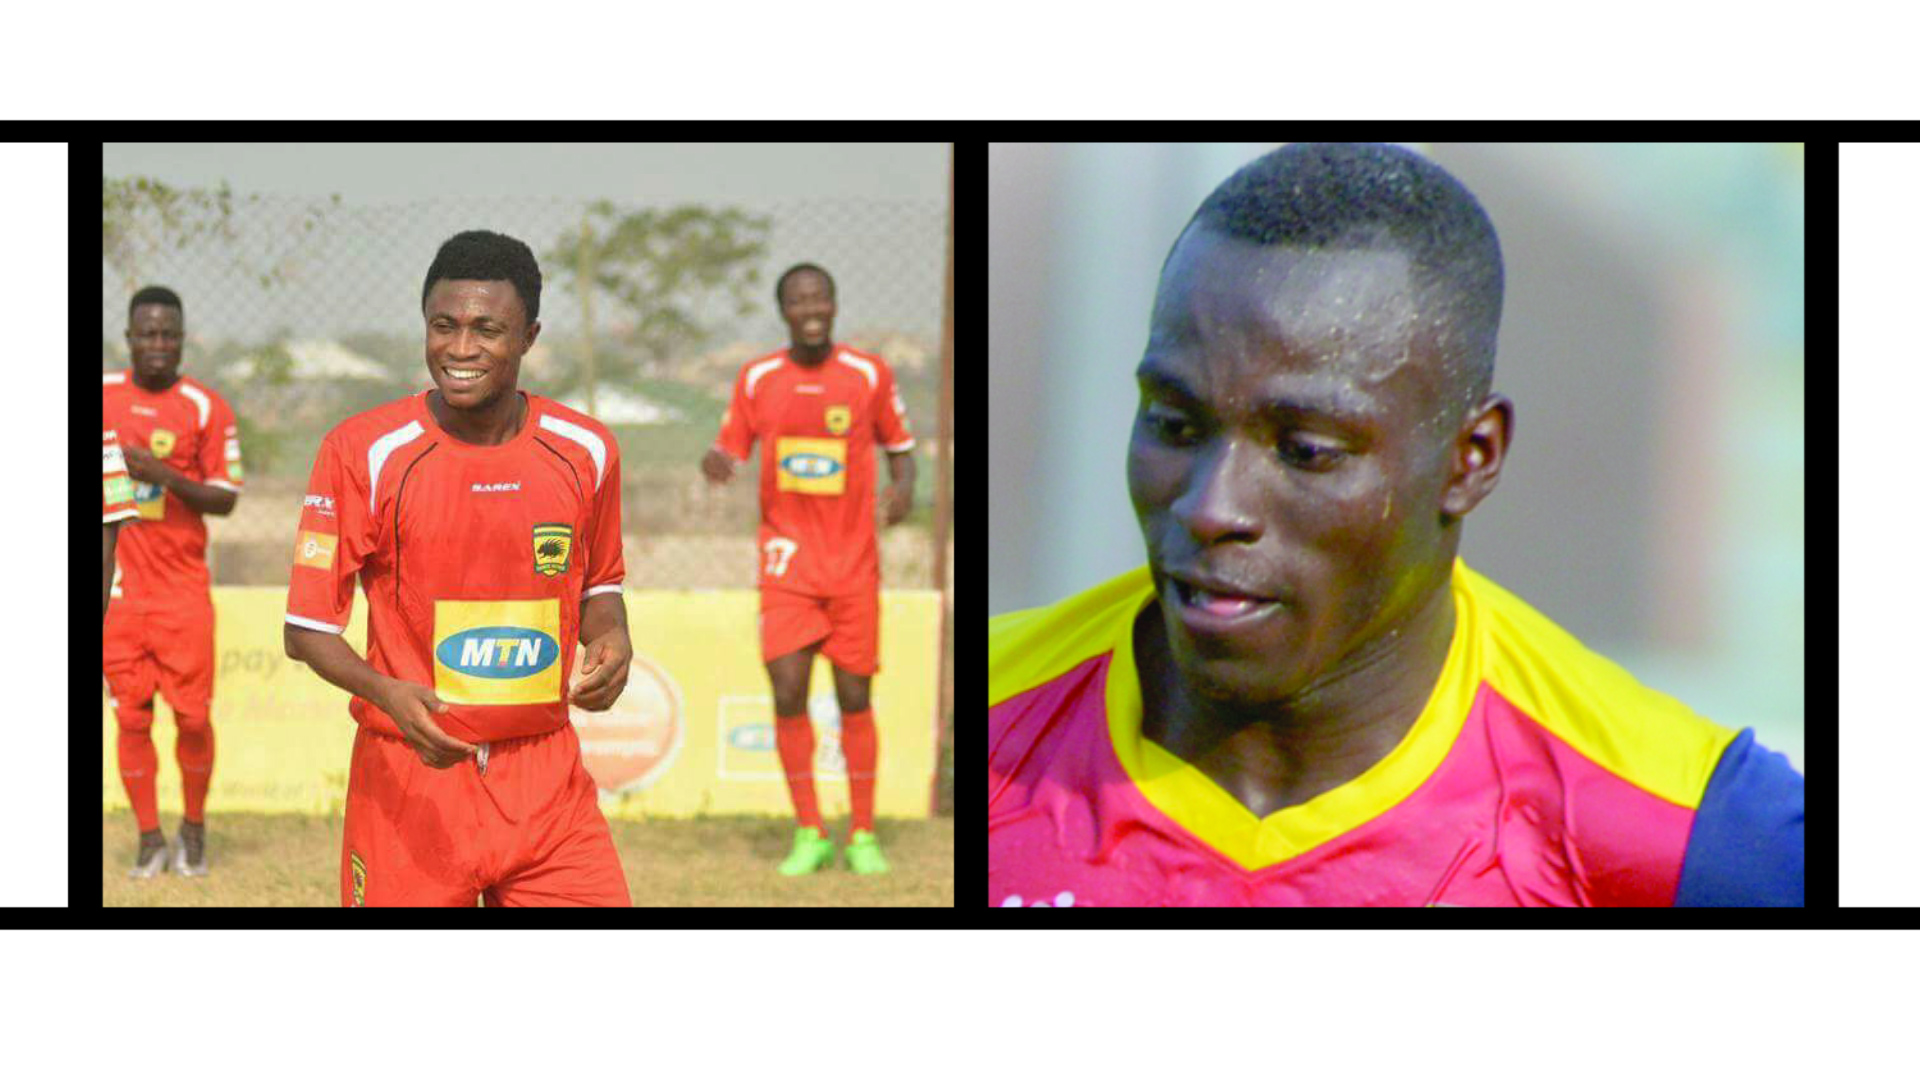 Kotoko coach Steve Polack claims Emmanuel Gyamfi is FAR AHEAD of Hearts of Oak rival Patrick Razak